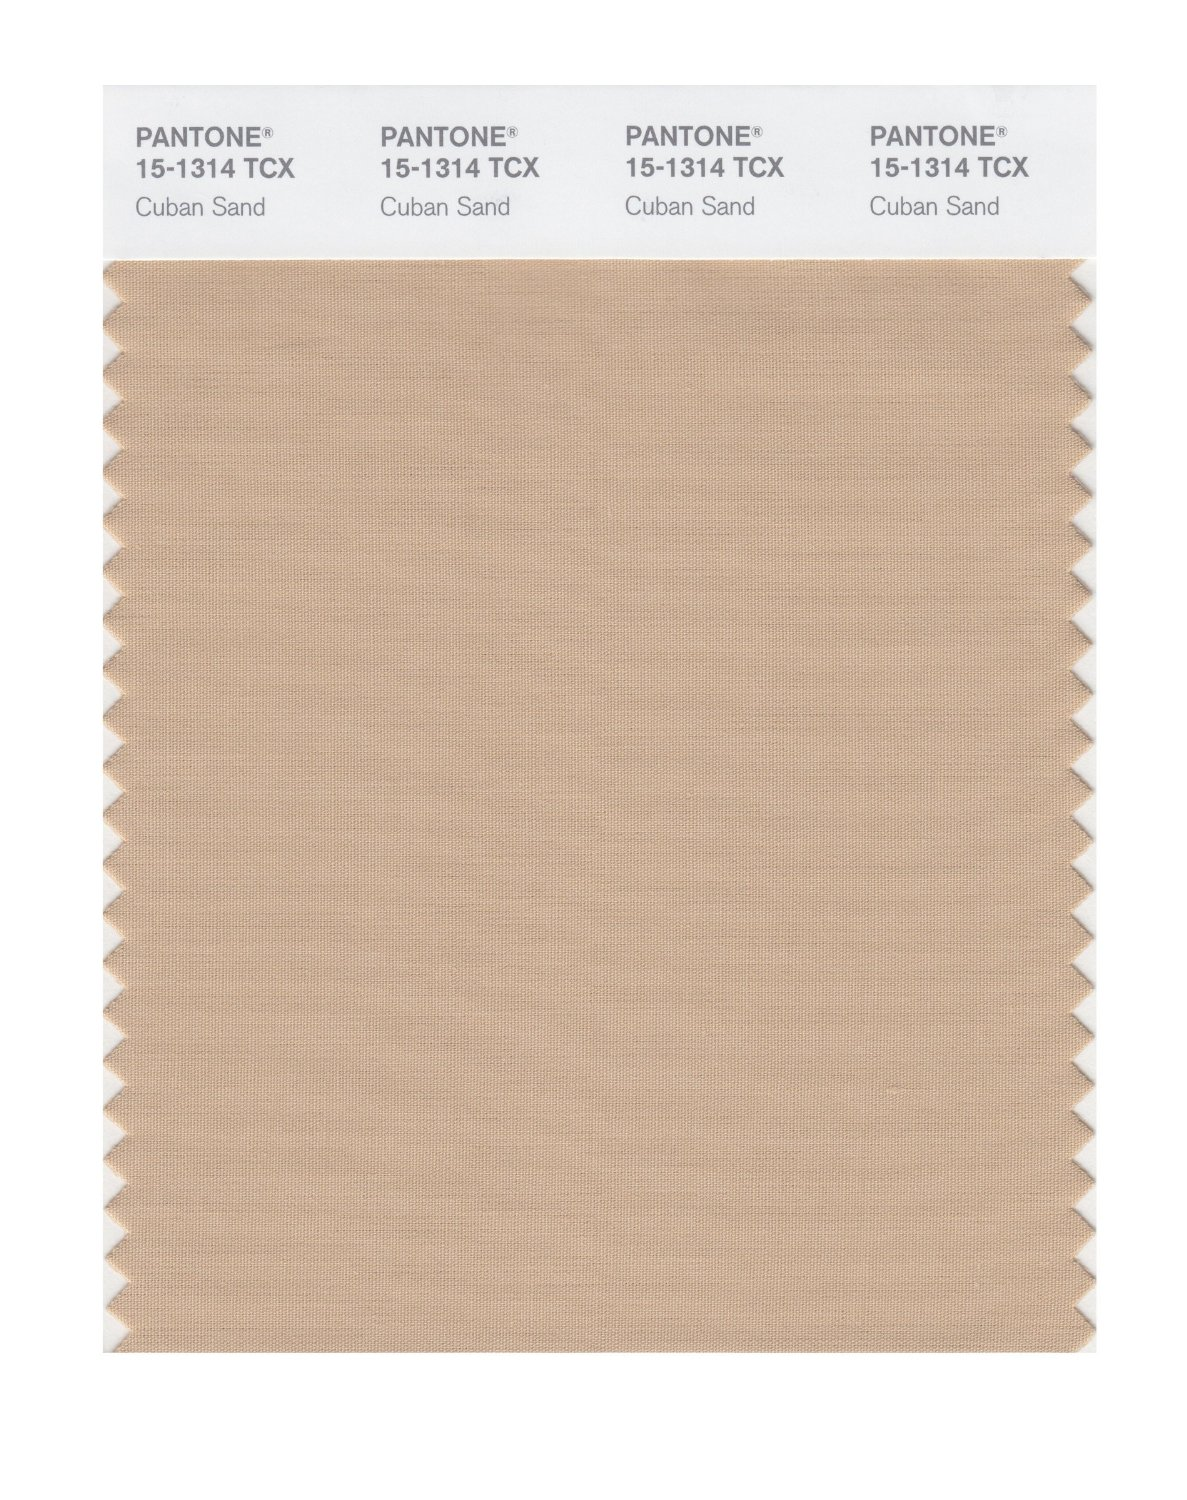 Pantone Smart Swatch 15-1314 Cuban Sand